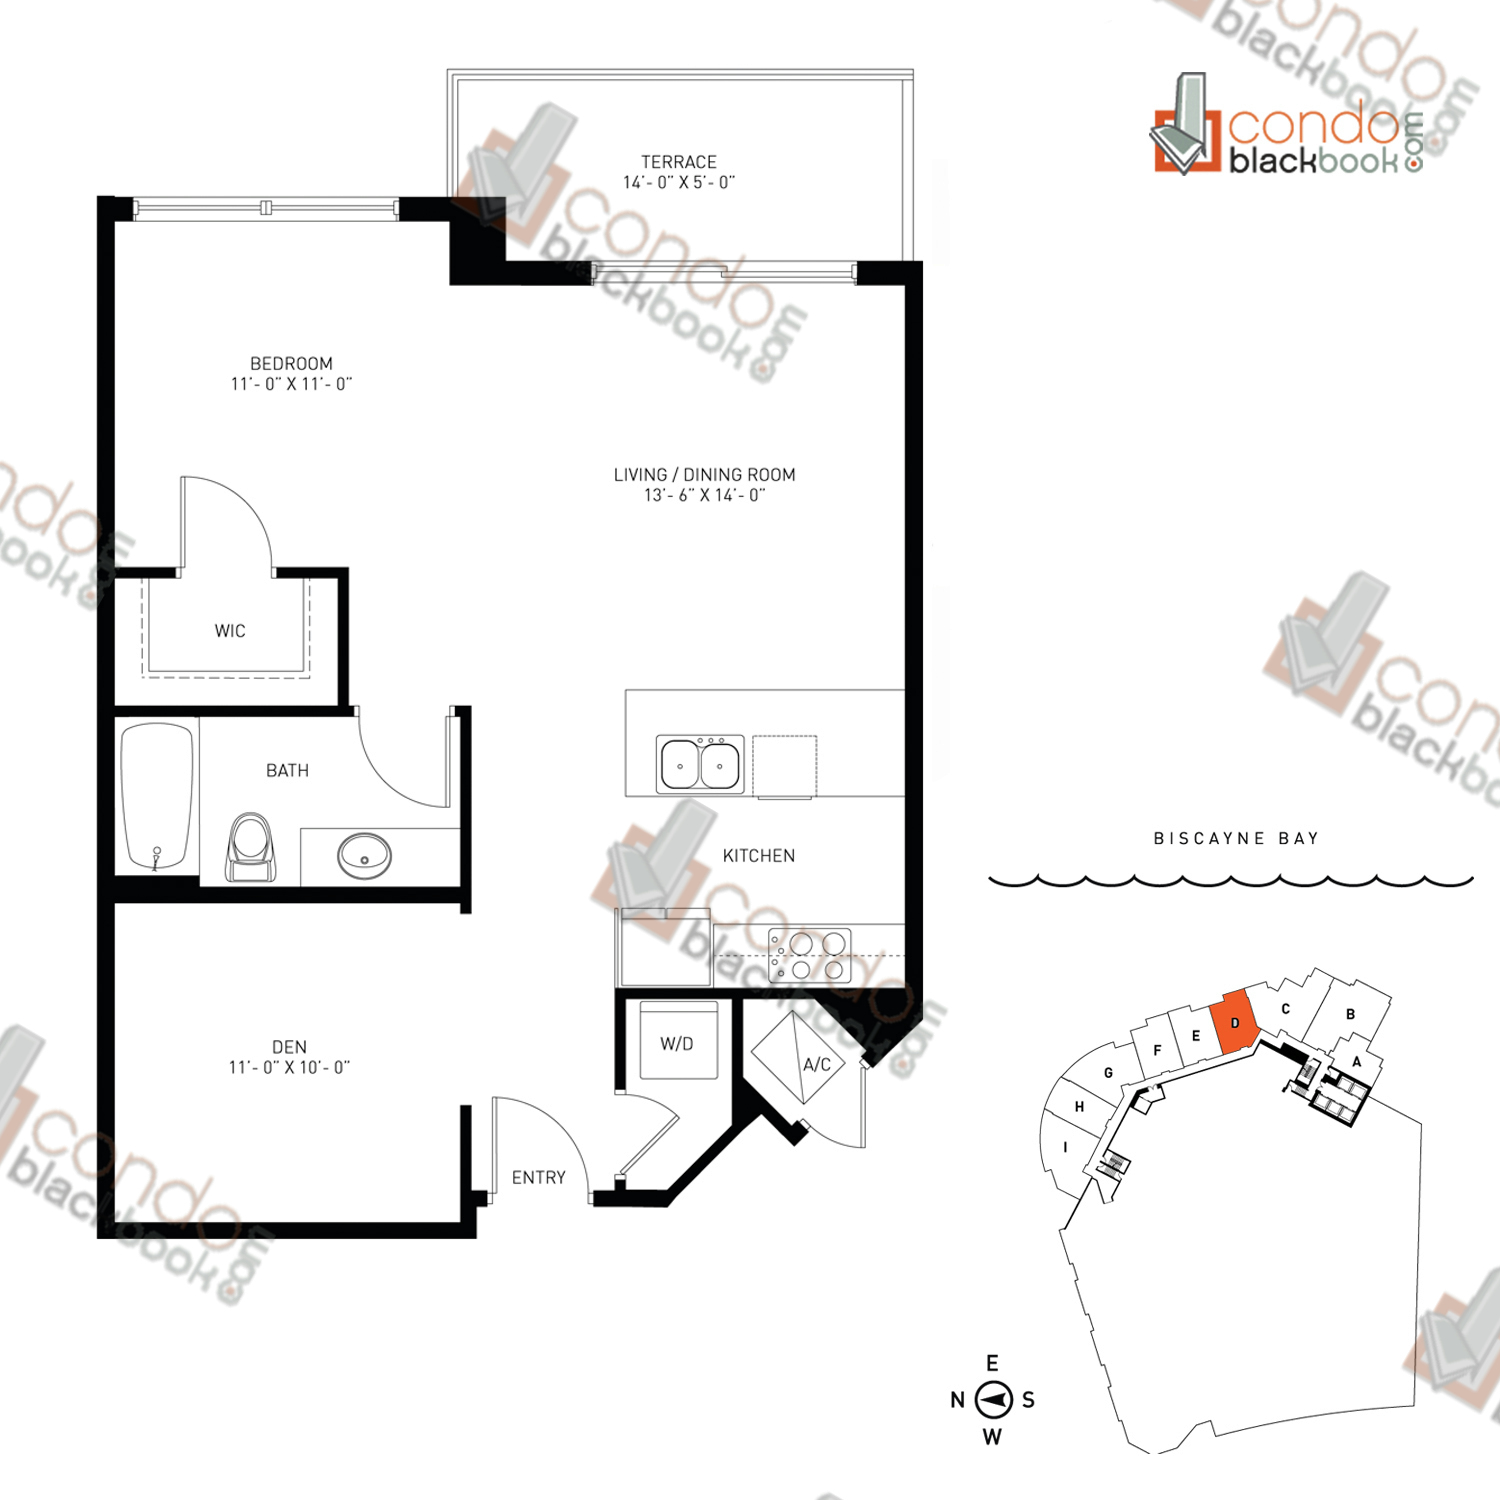 Floor plan for Quantum on the Bay Edgewater Miami, model Loft_D, line South Tower - 04, 1/1+Den bedrooms, 763 sq ft